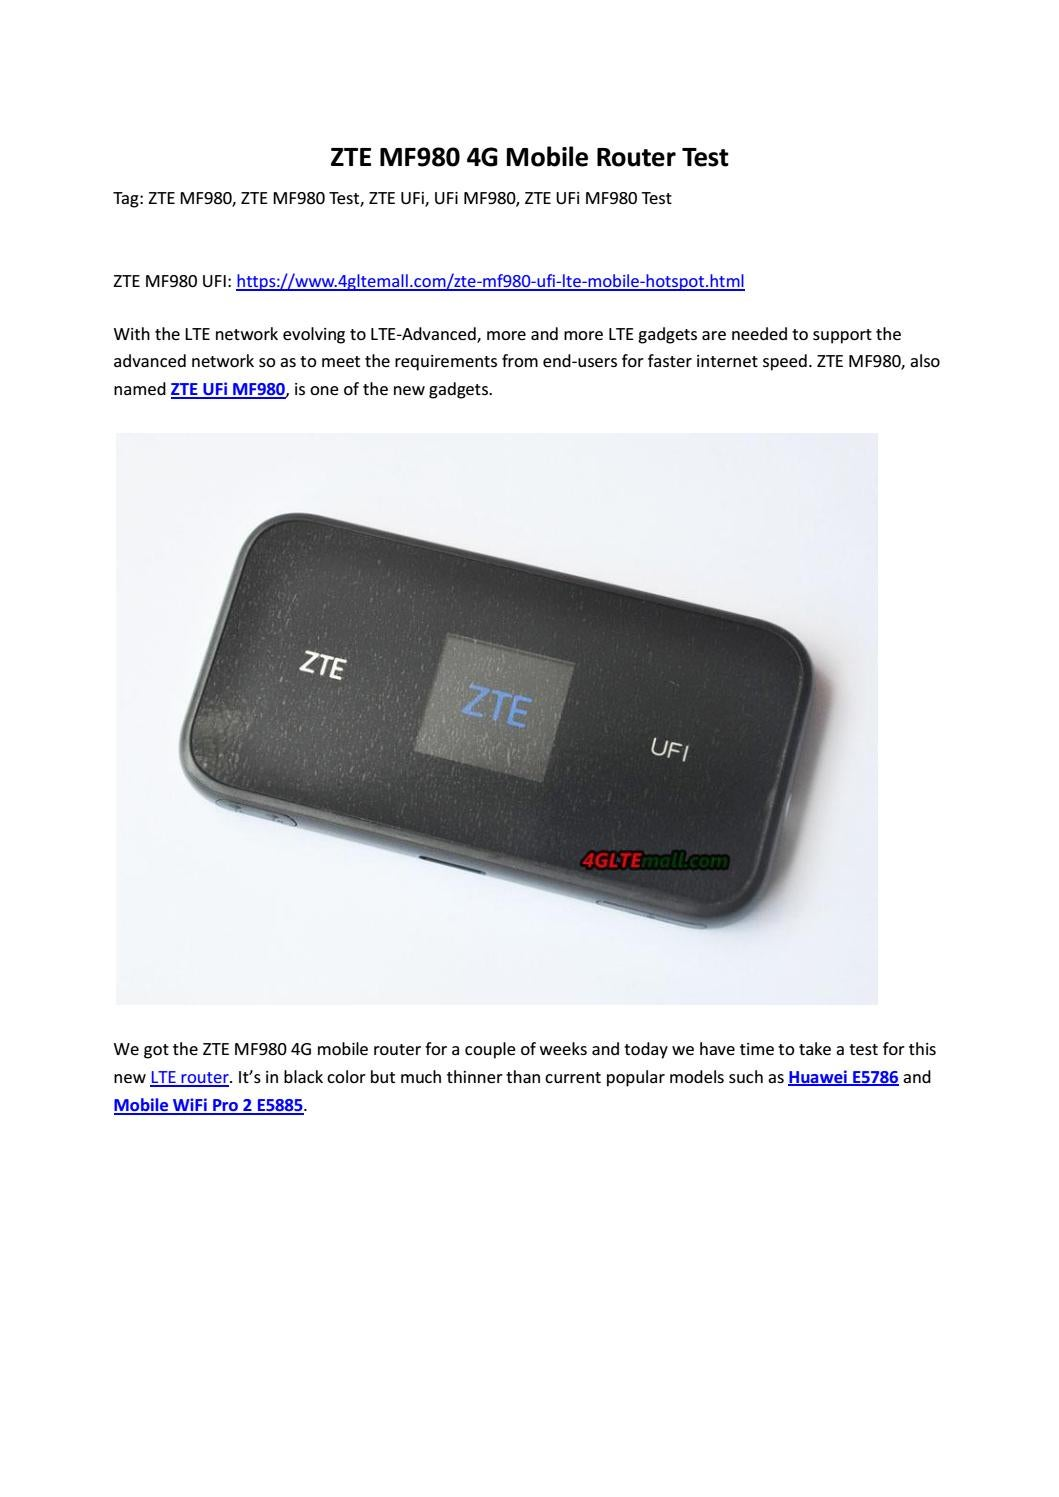 zte ufi mf980 4g mobile router test by lte mall issuu. Black Bedroom Furniture Sets. Home Design Ideas